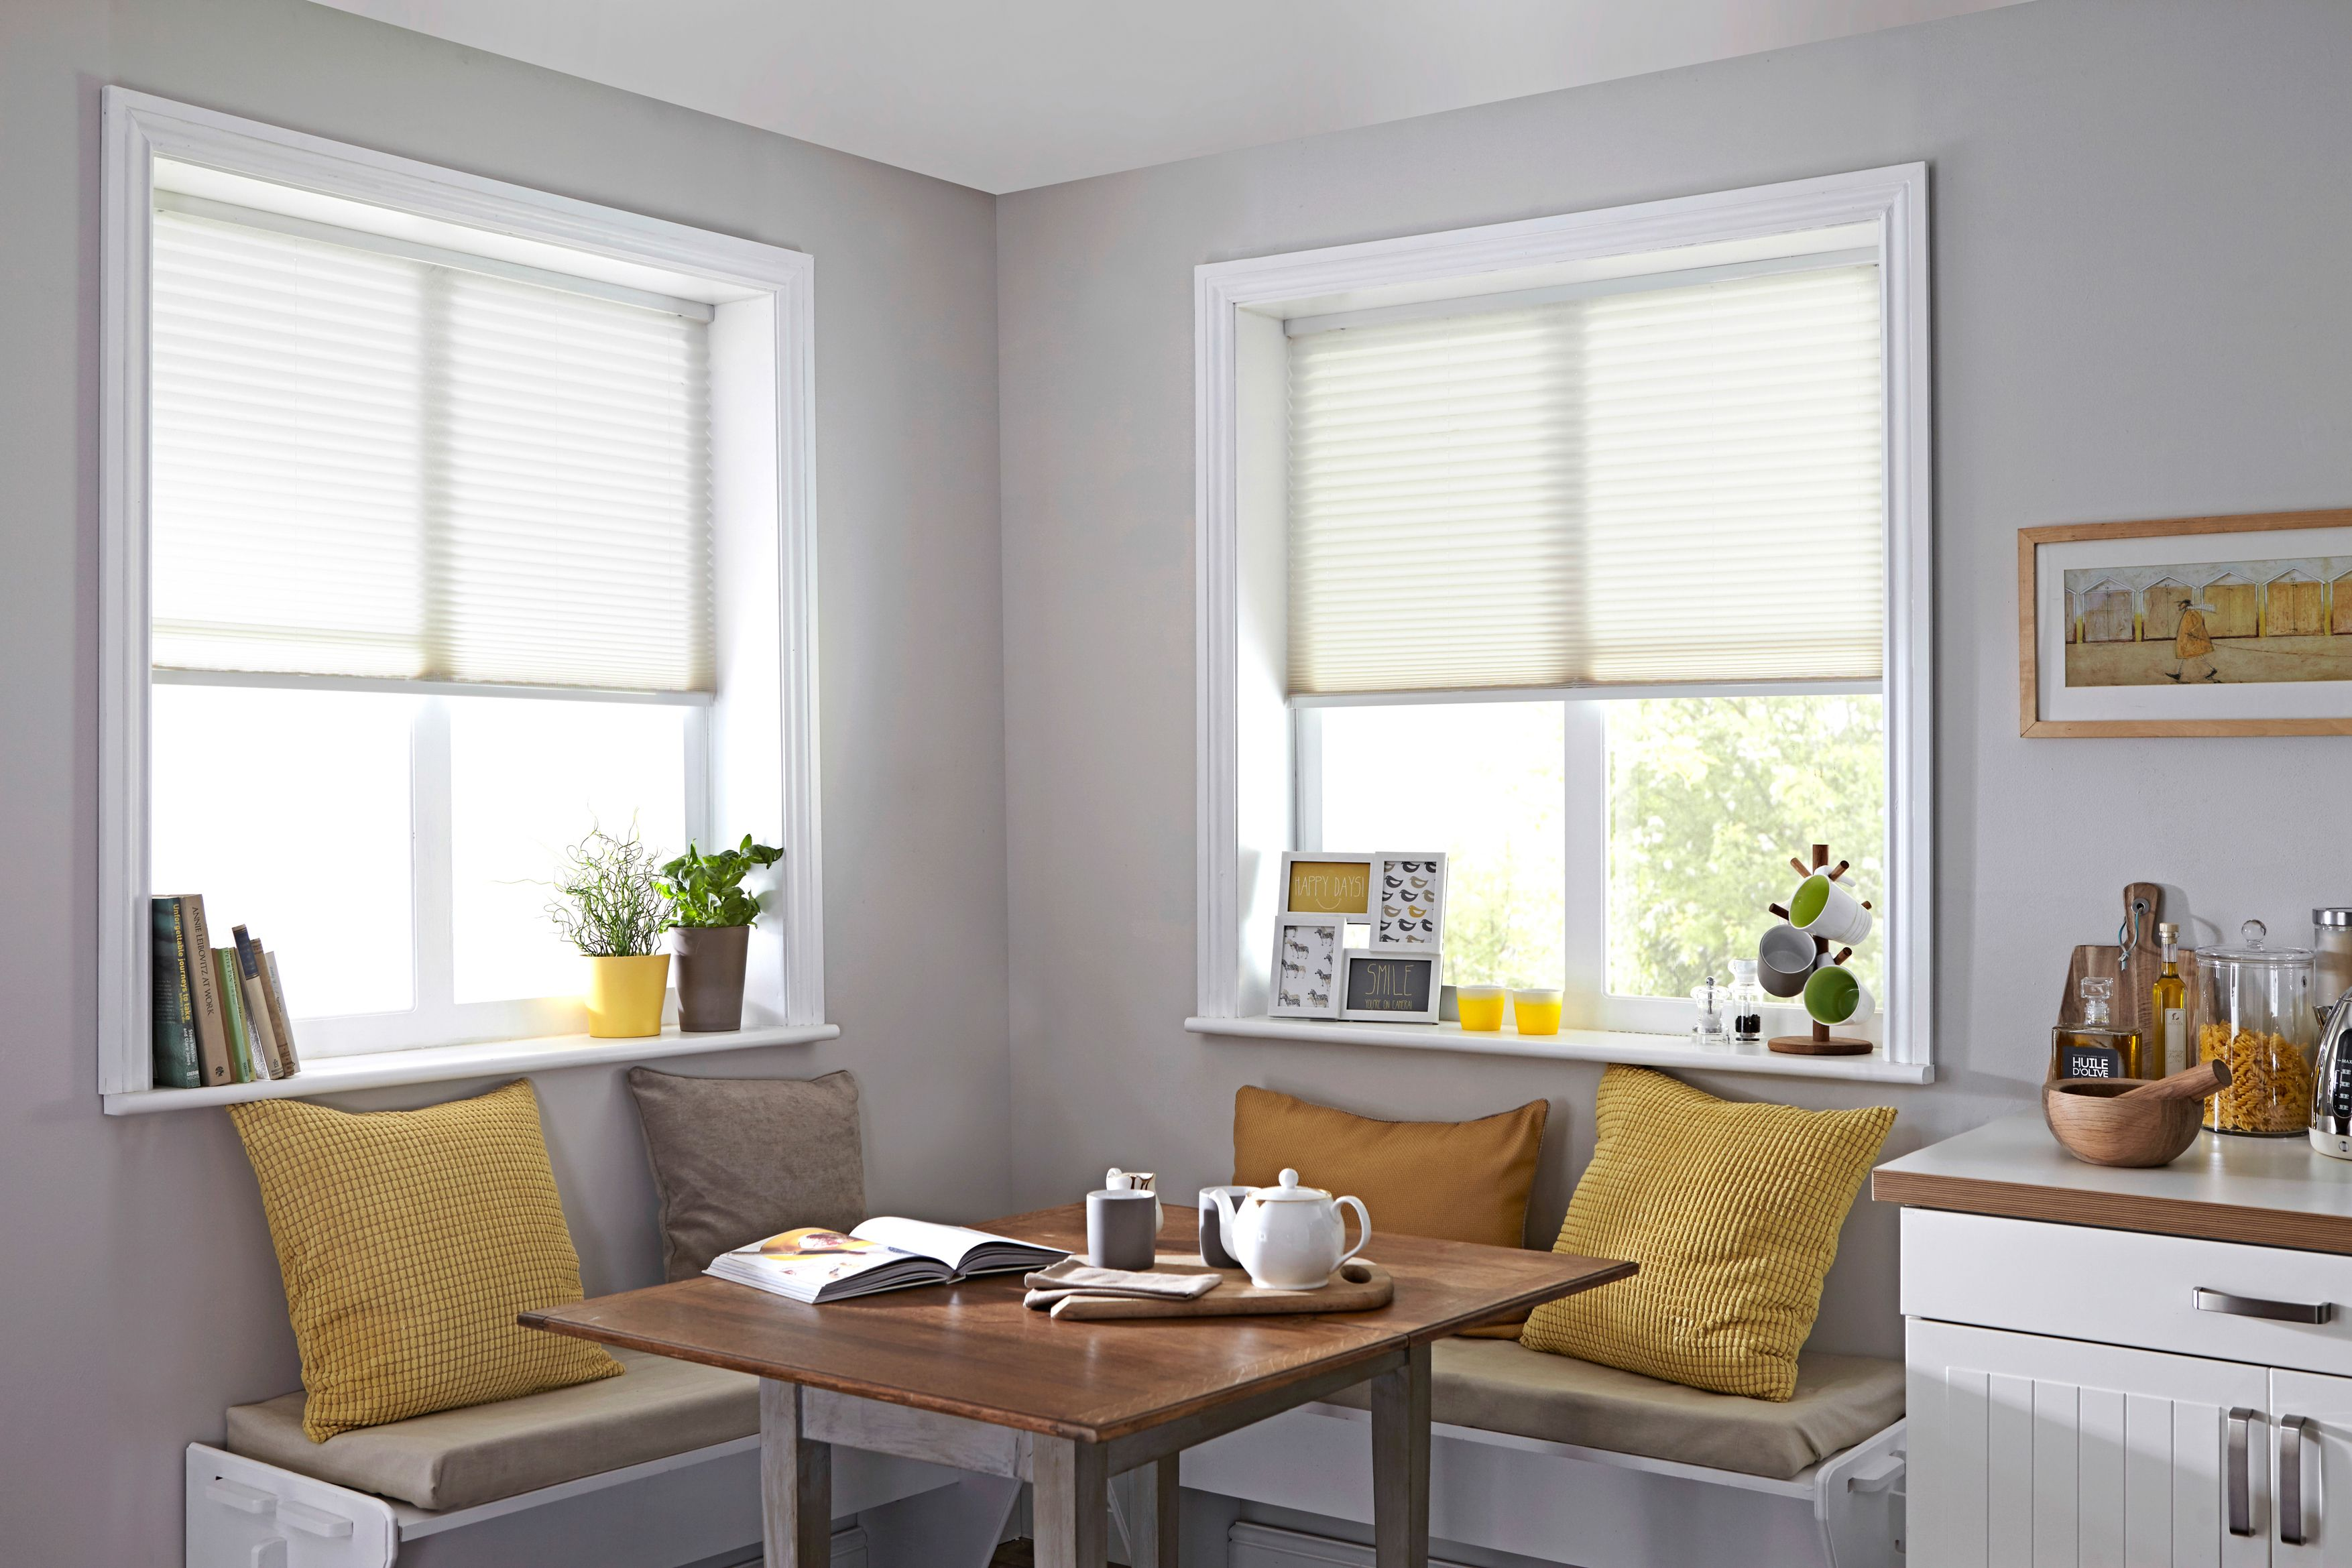 Clean bright white window blinds white blinds from style studio